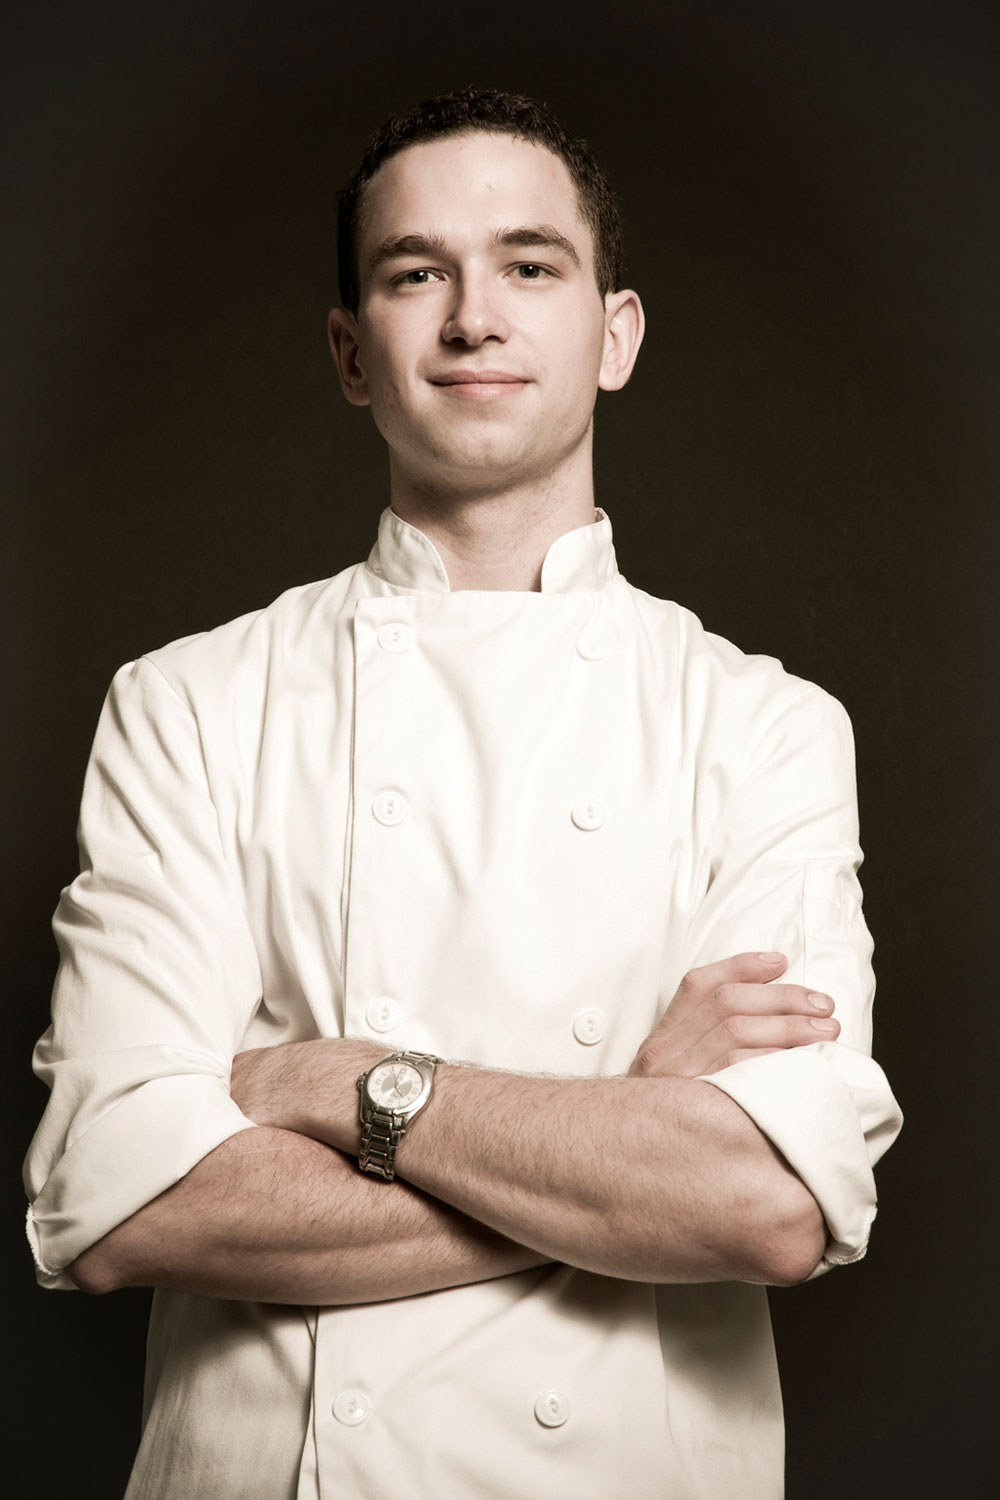 Carl Heinrich is co-owner of Toronto's Richmond Station and winner of this year's Top Chef Canada.